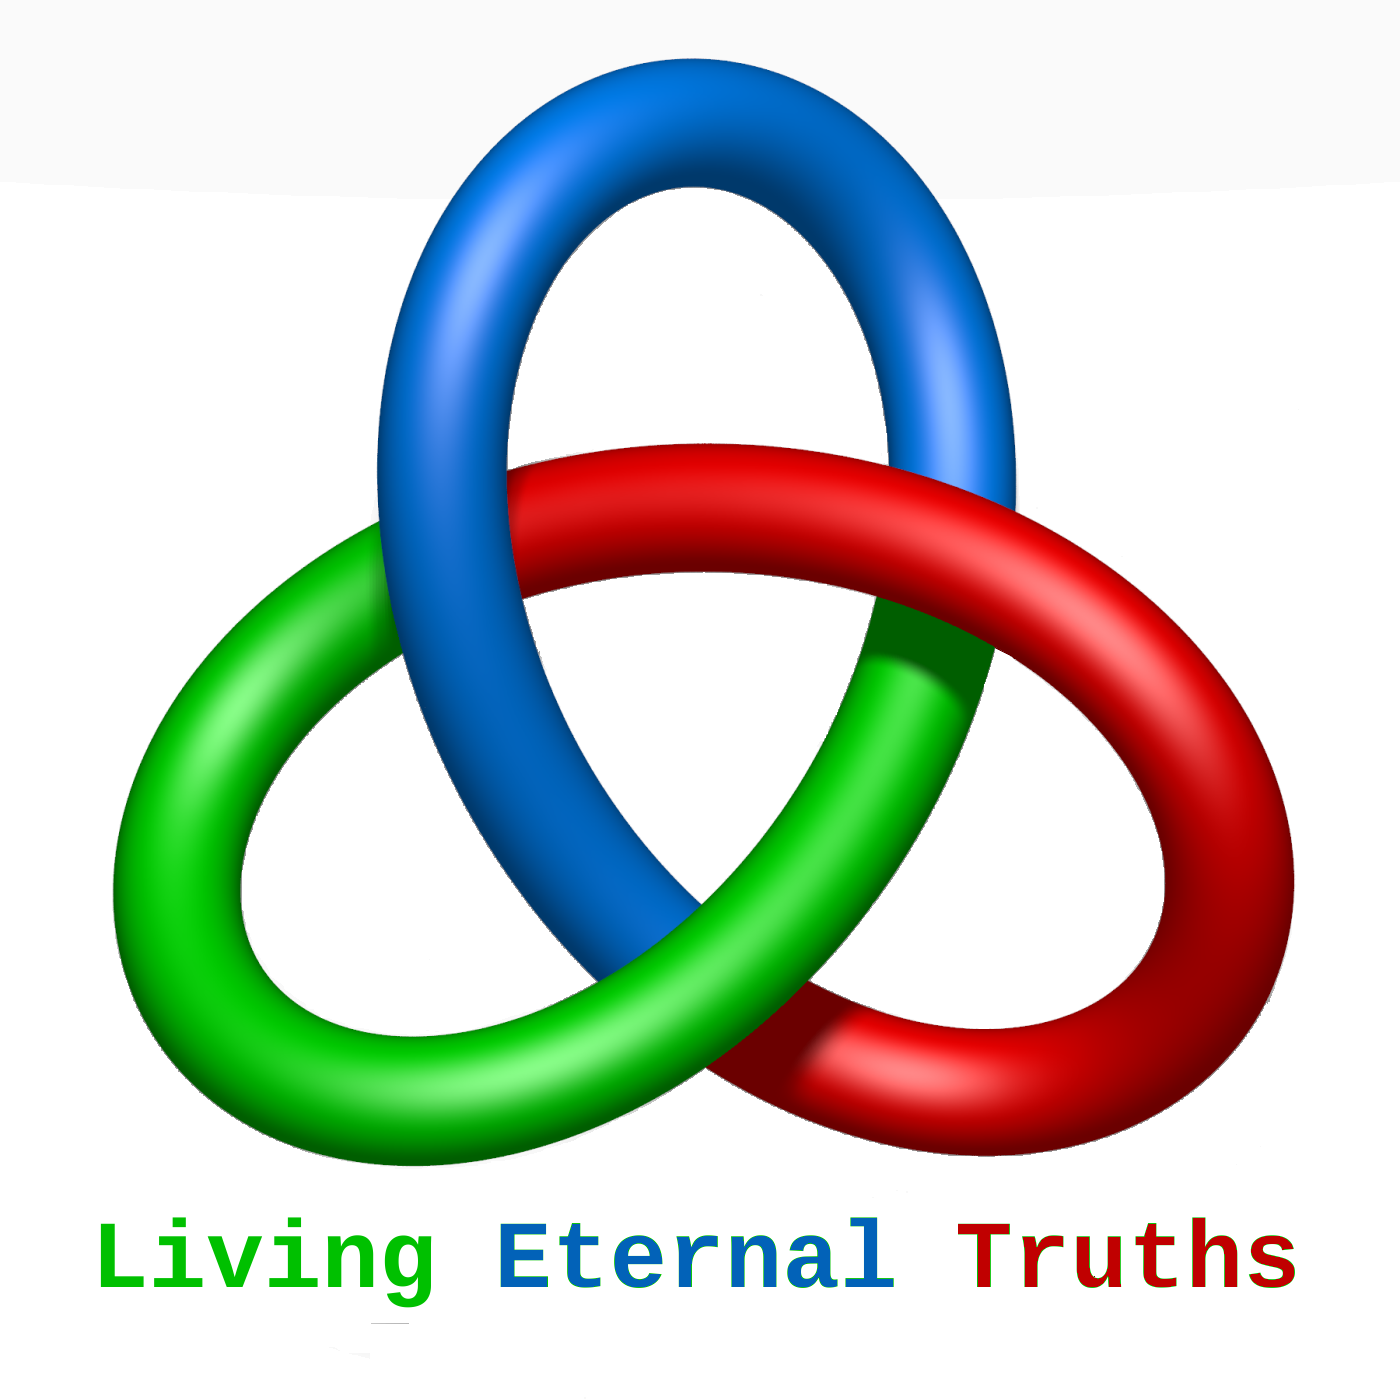 The Living Eternal Truths Podcast